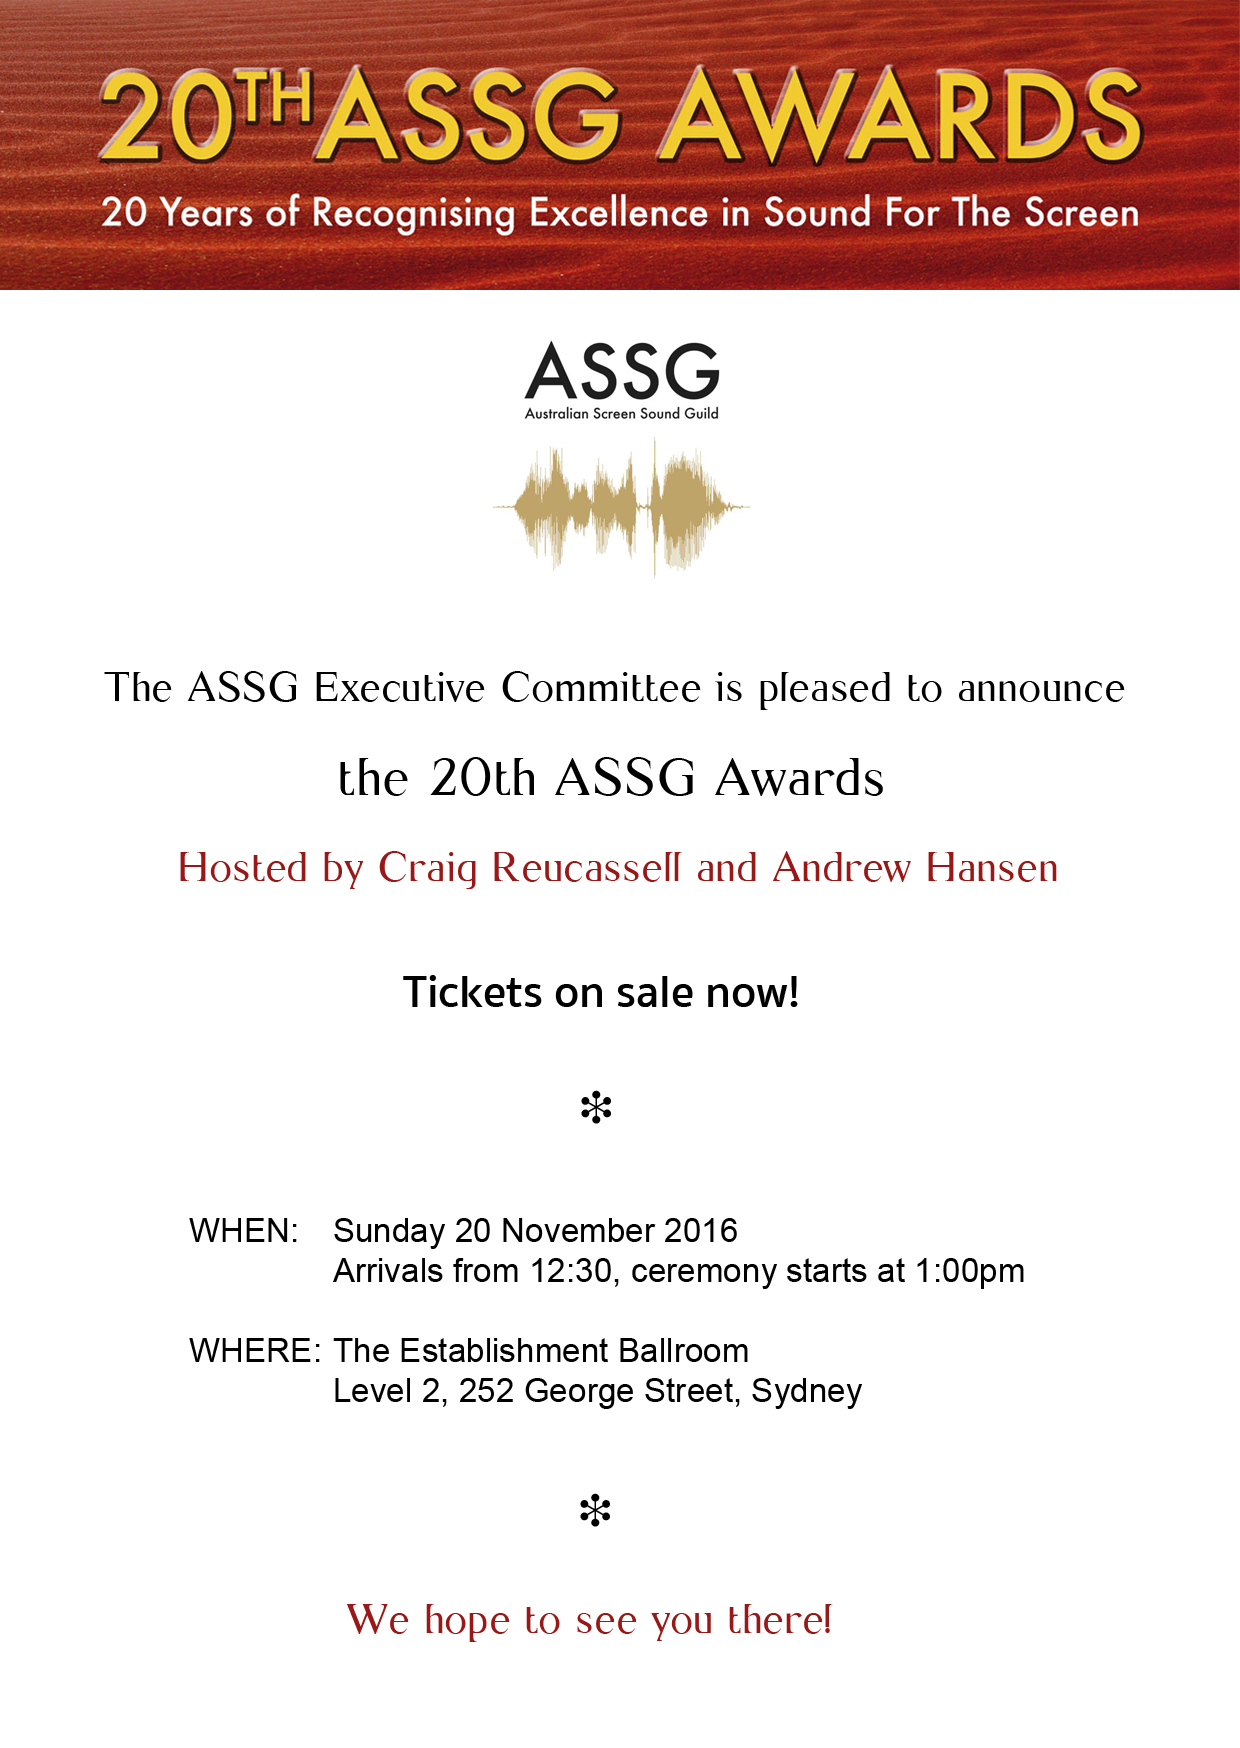 assg-awards-announcement-for-website